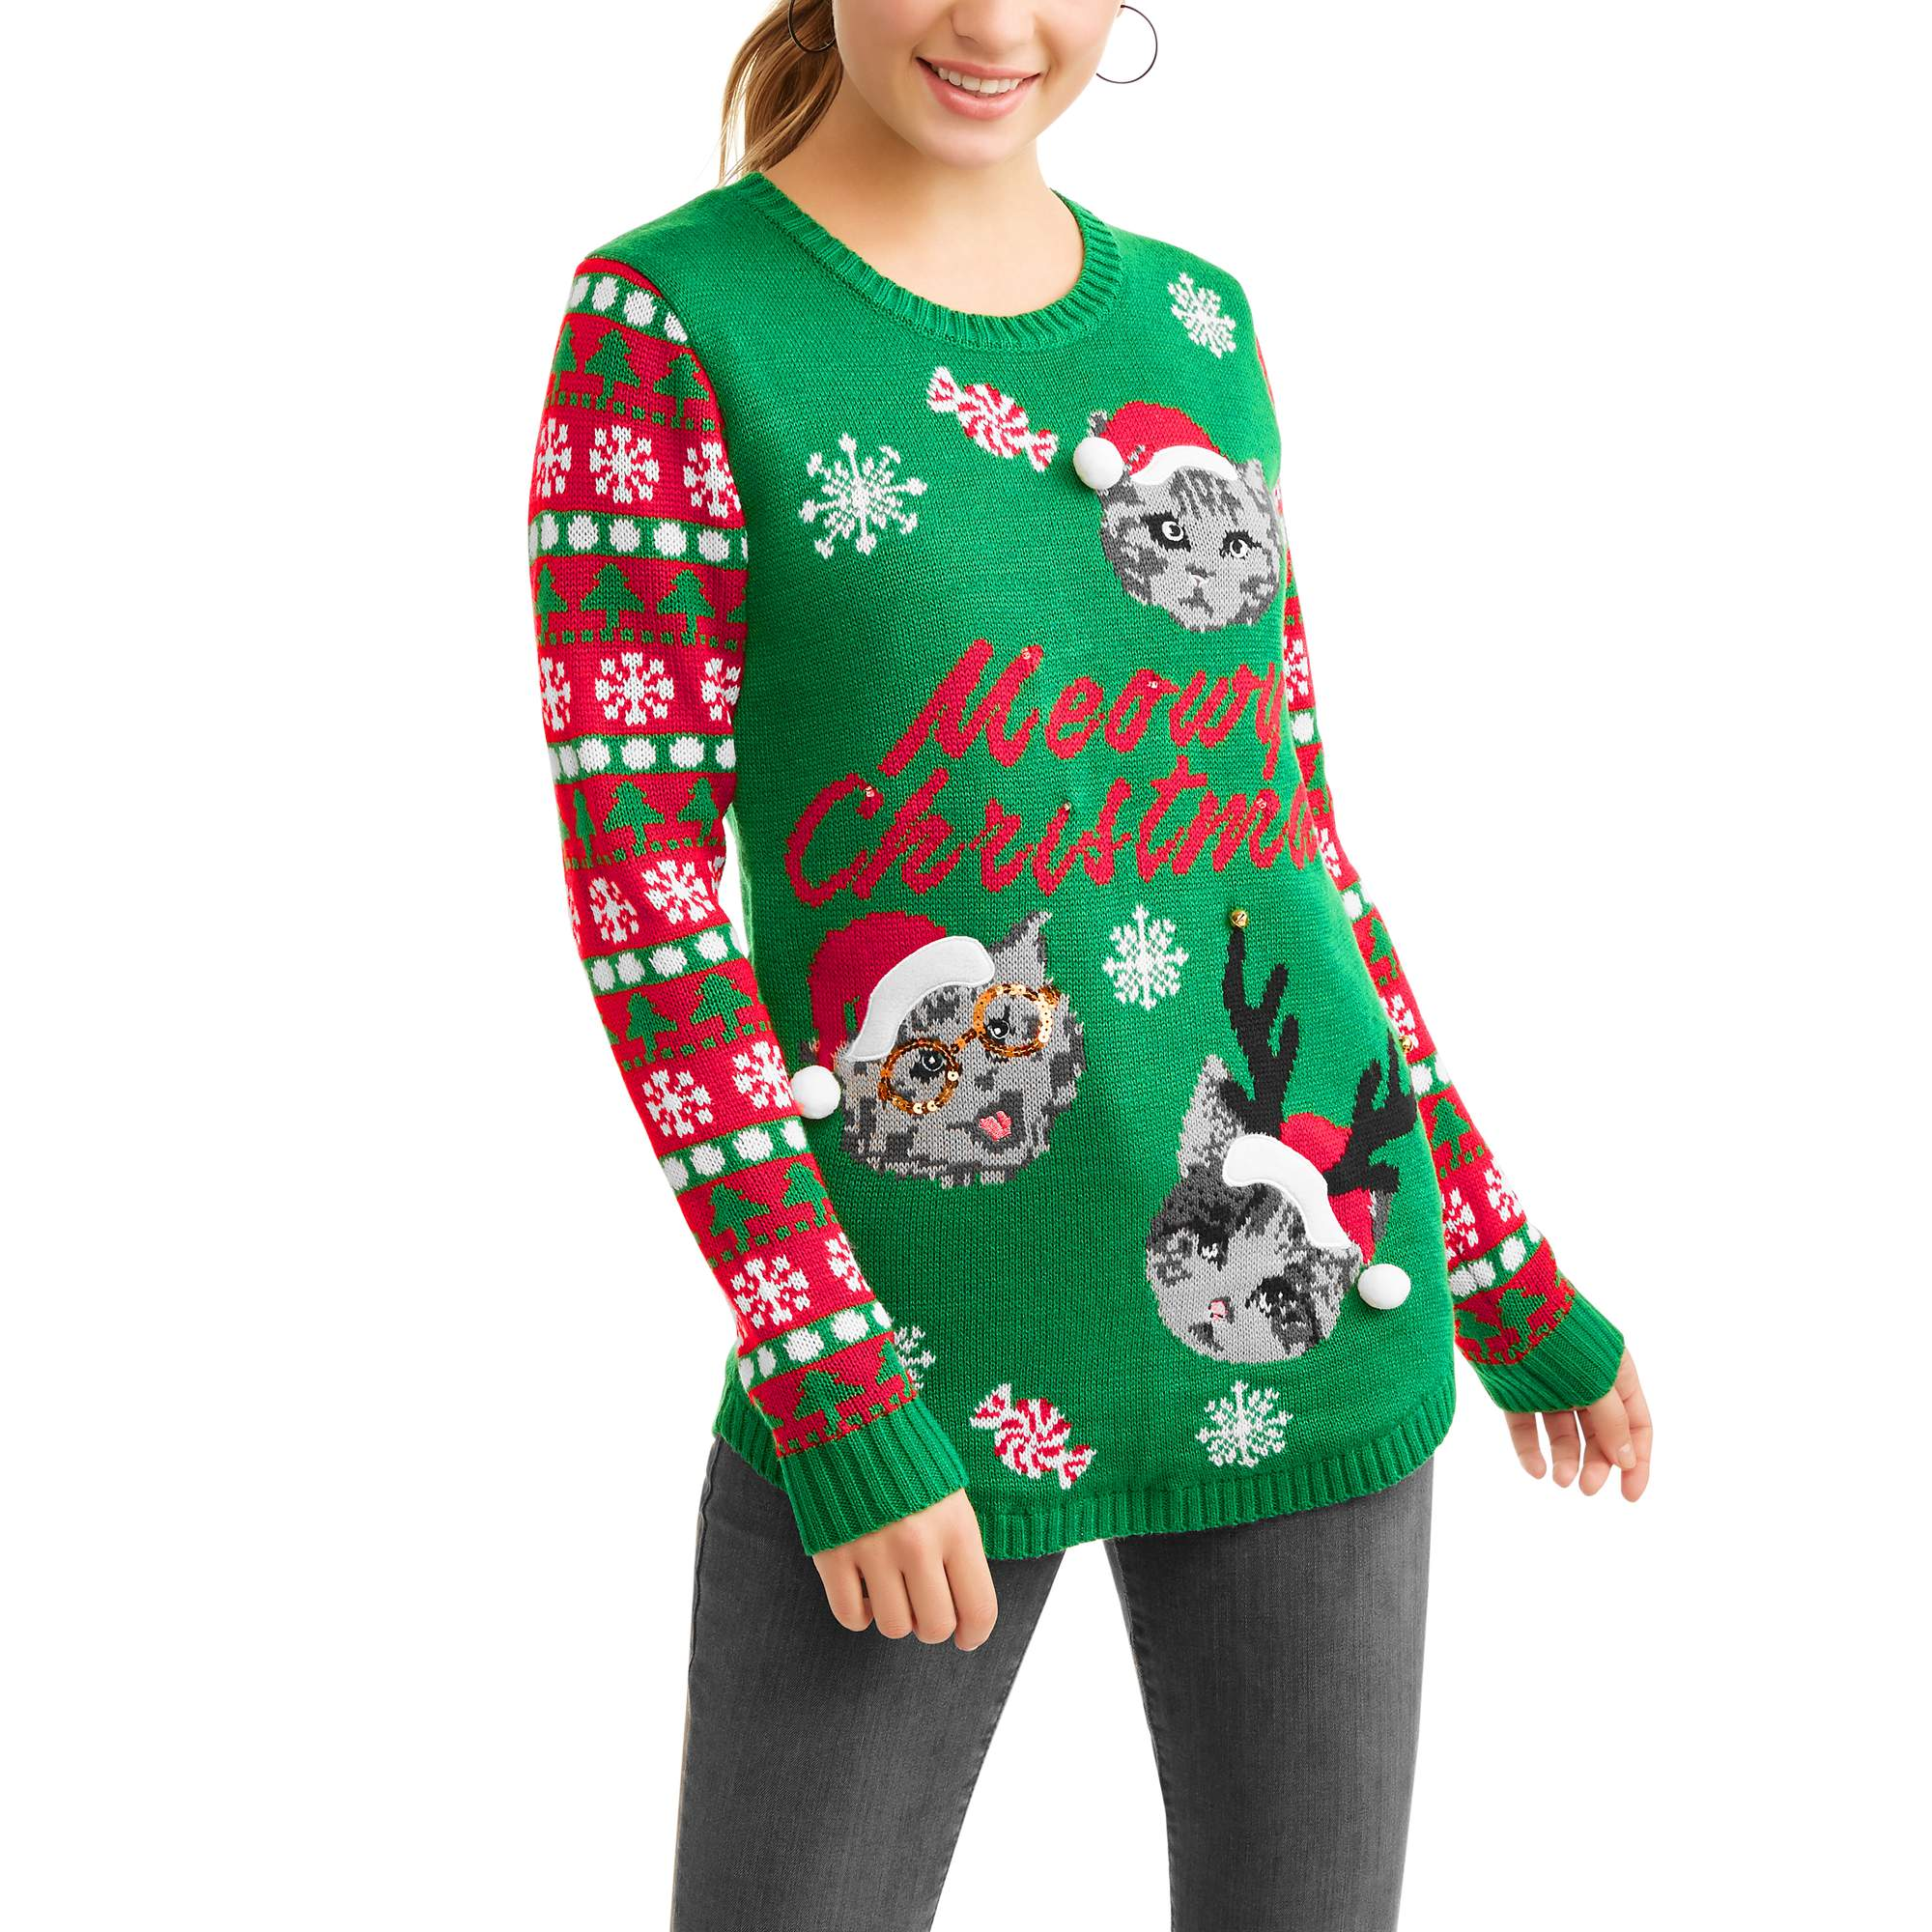 No Boundaries Juniors Light Up Meowy Christmas Holiday Sweater